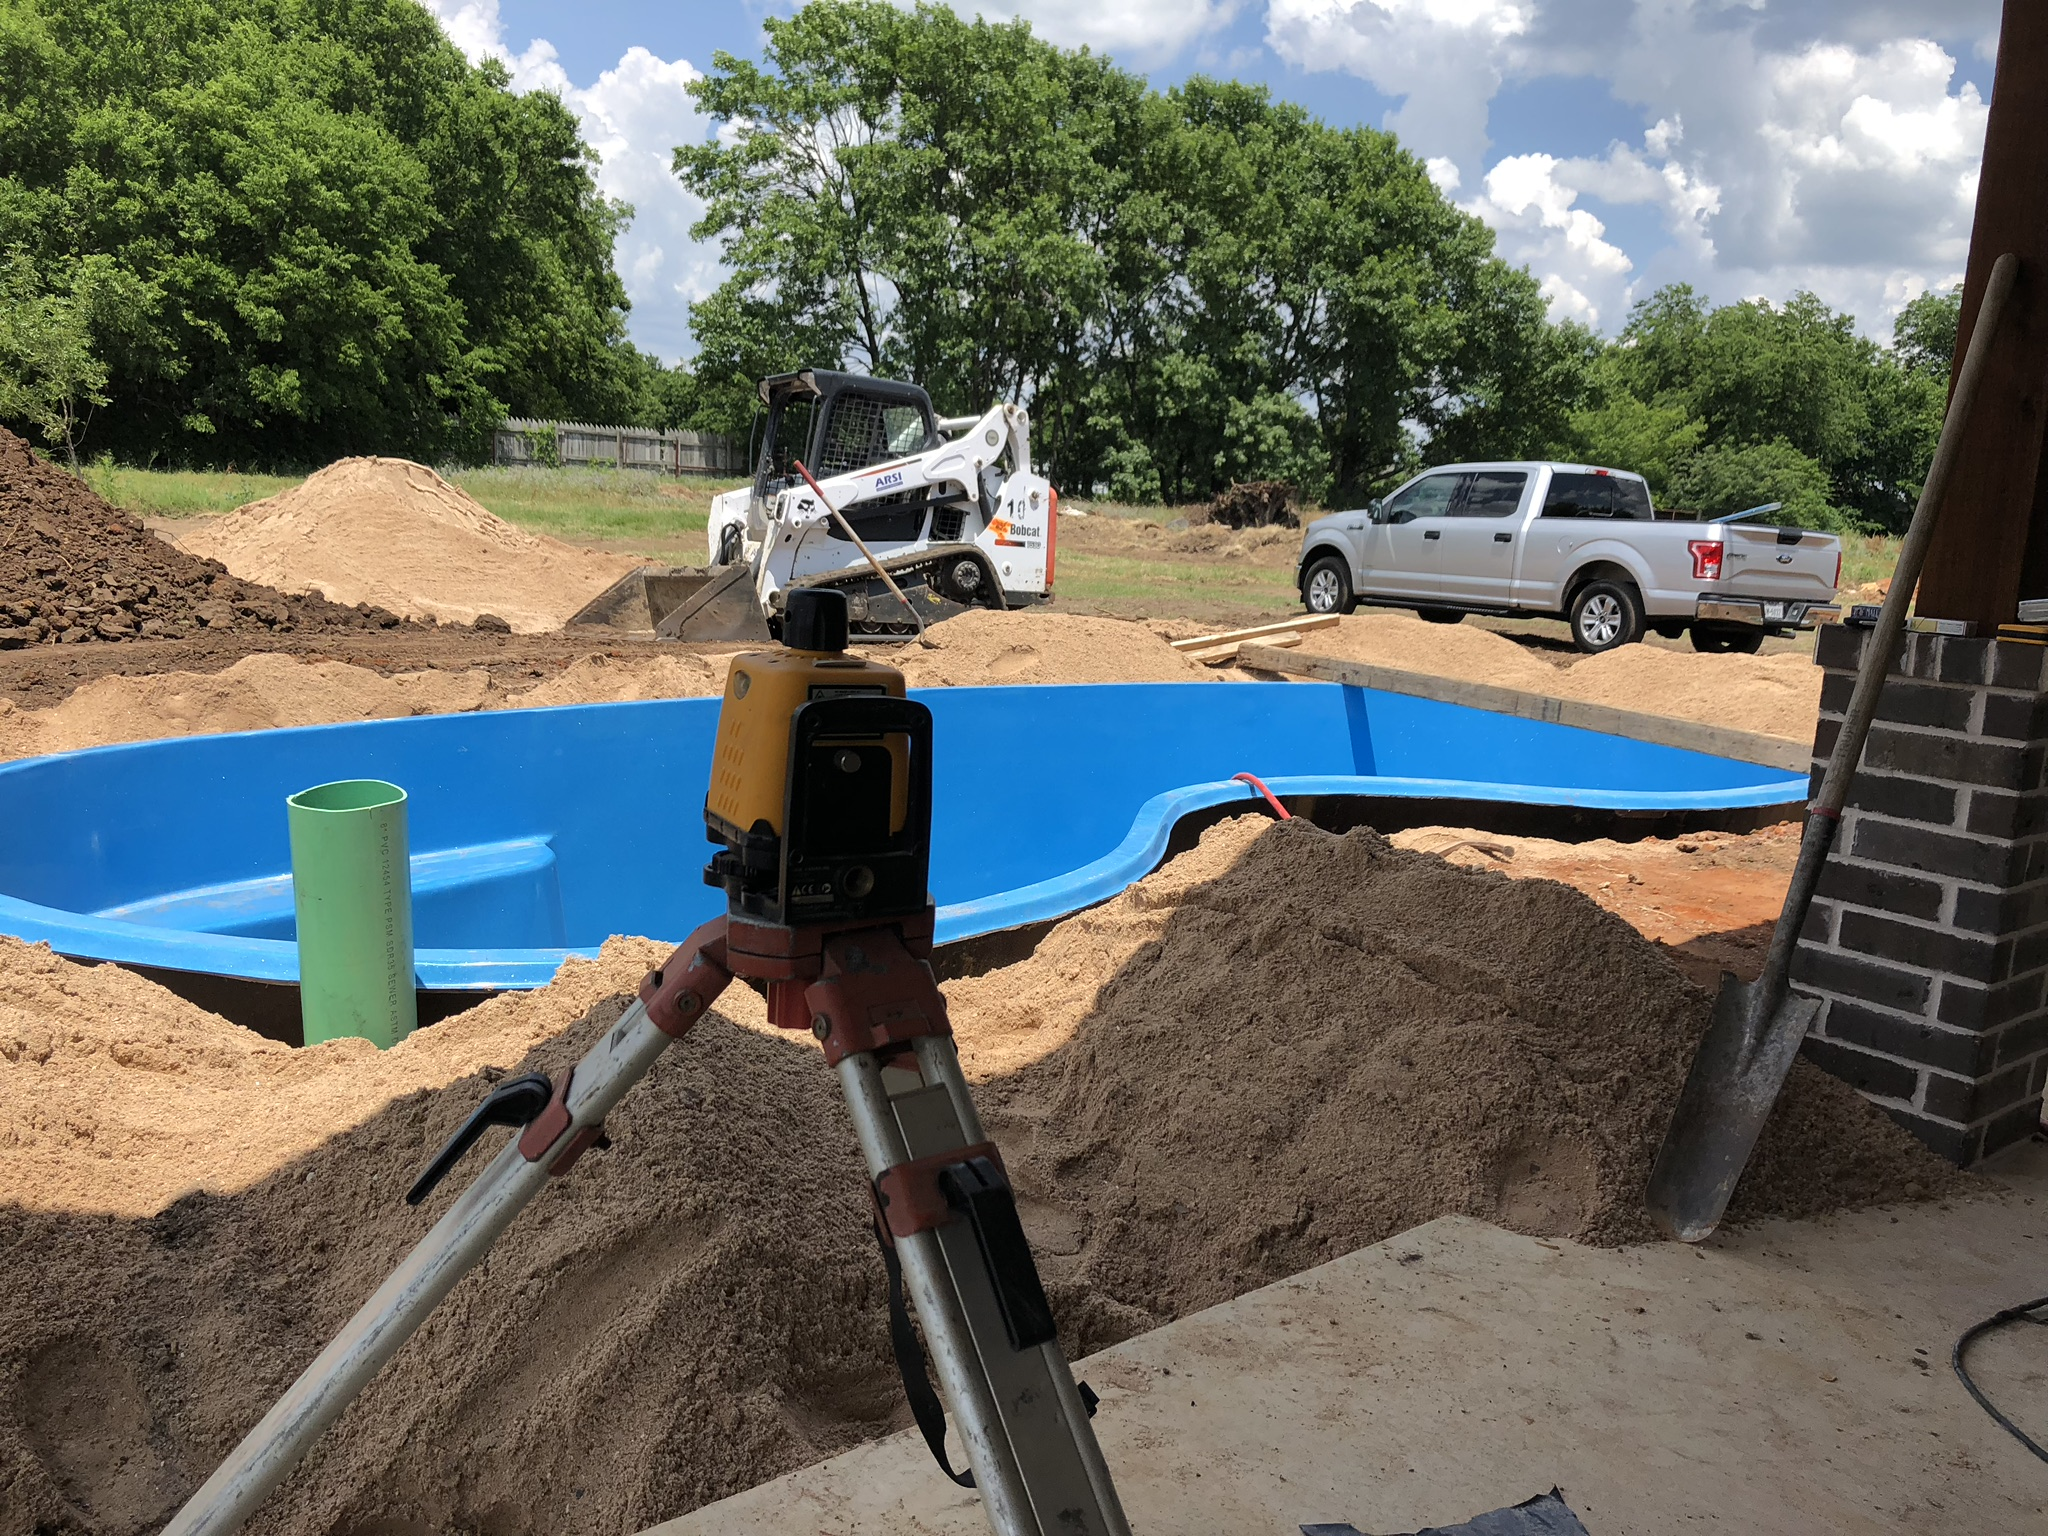 Believe it or not, we required only a two man installation crew for this new pool install! Some may think that is a few men too short, but if you know what you're doing that's just right! This image shows our elevation measuring tool. We use this to ensure your pool is set level. All of this work is completed before your pool arrives the same or second day after excavation.